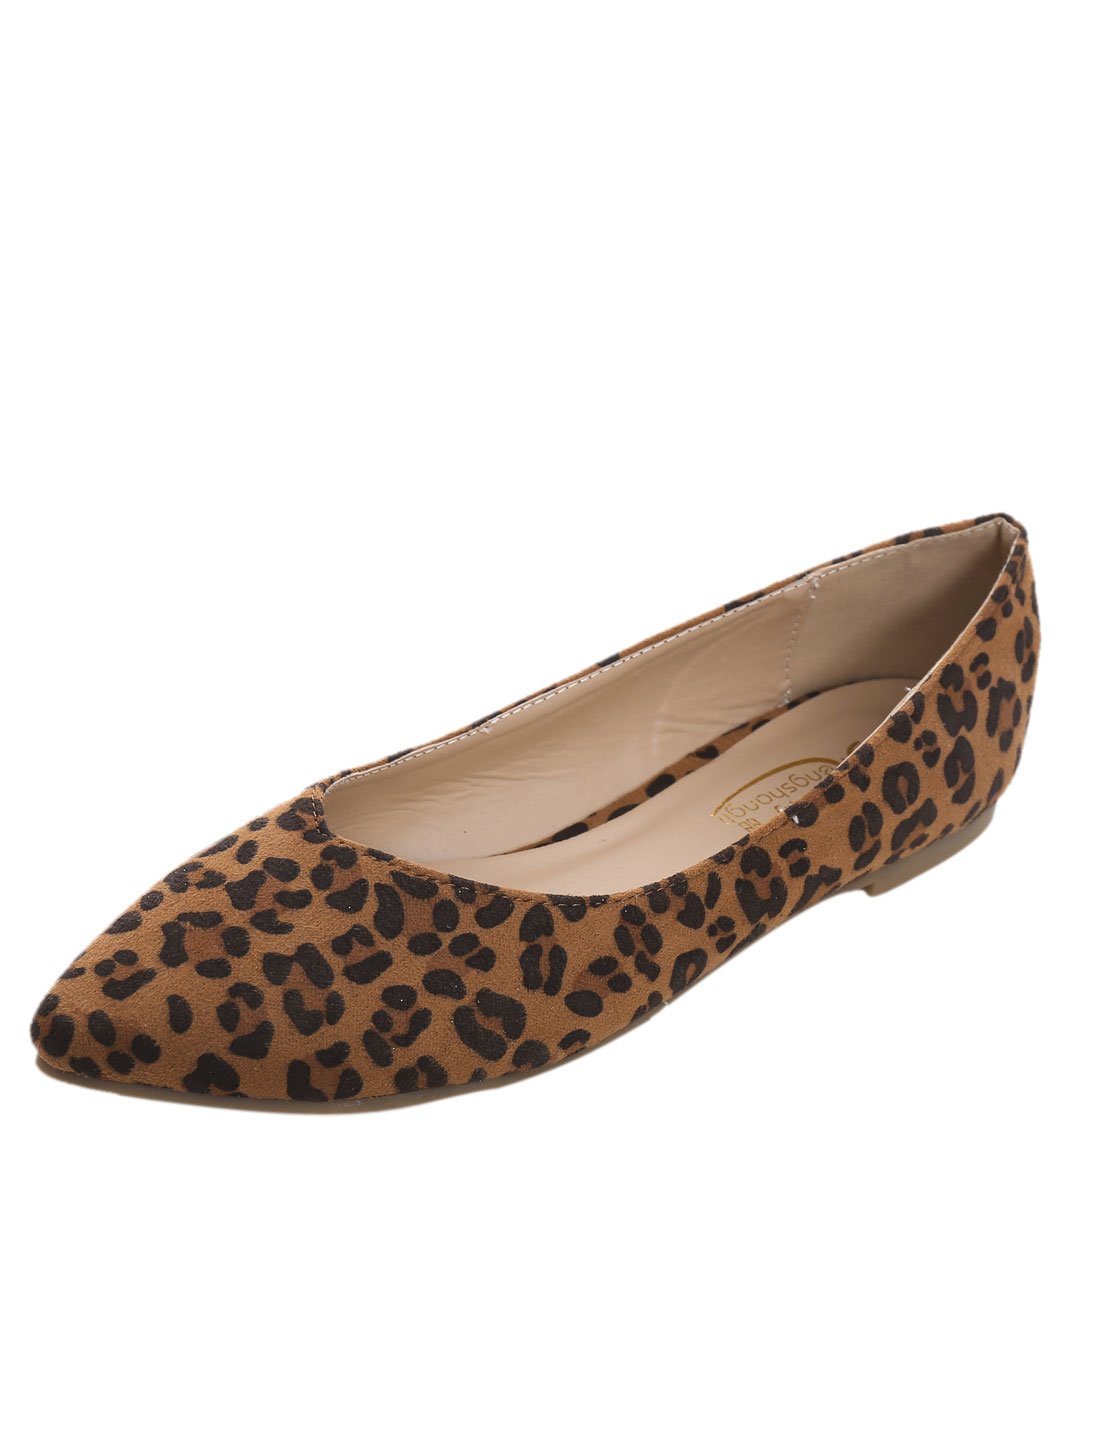 Ladies Leopard Pointed Toe Padded Insole Slip On Flats Brown US 9-9.5